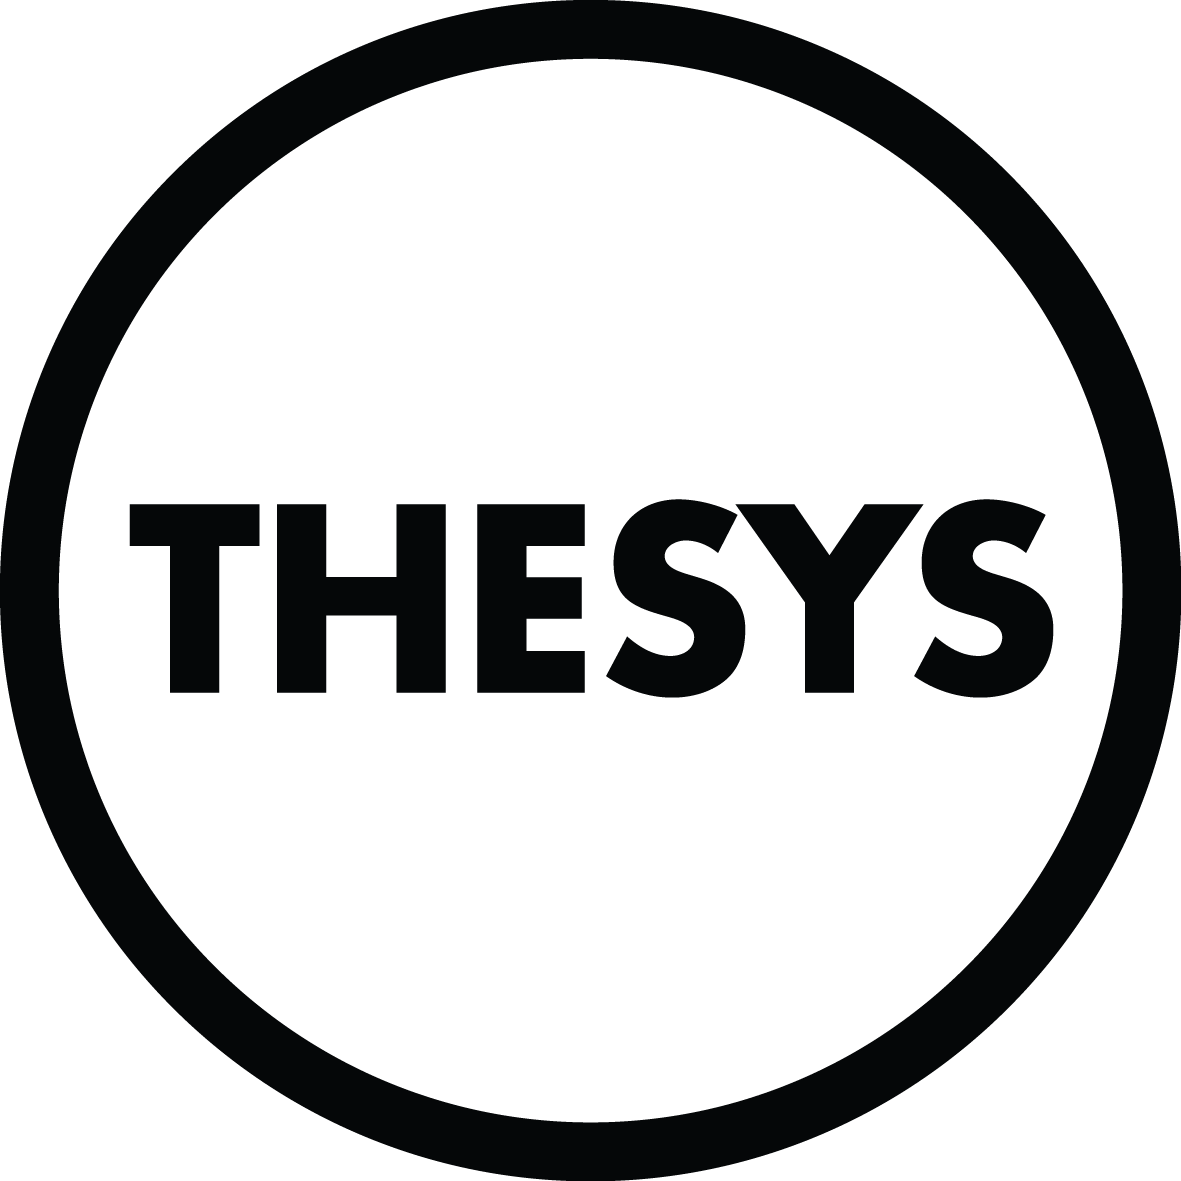 Thesys